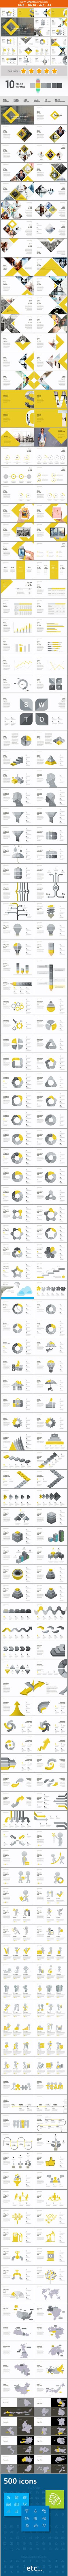 Business #Proposal Powerpoint Template - Business #PowerPoint Templates